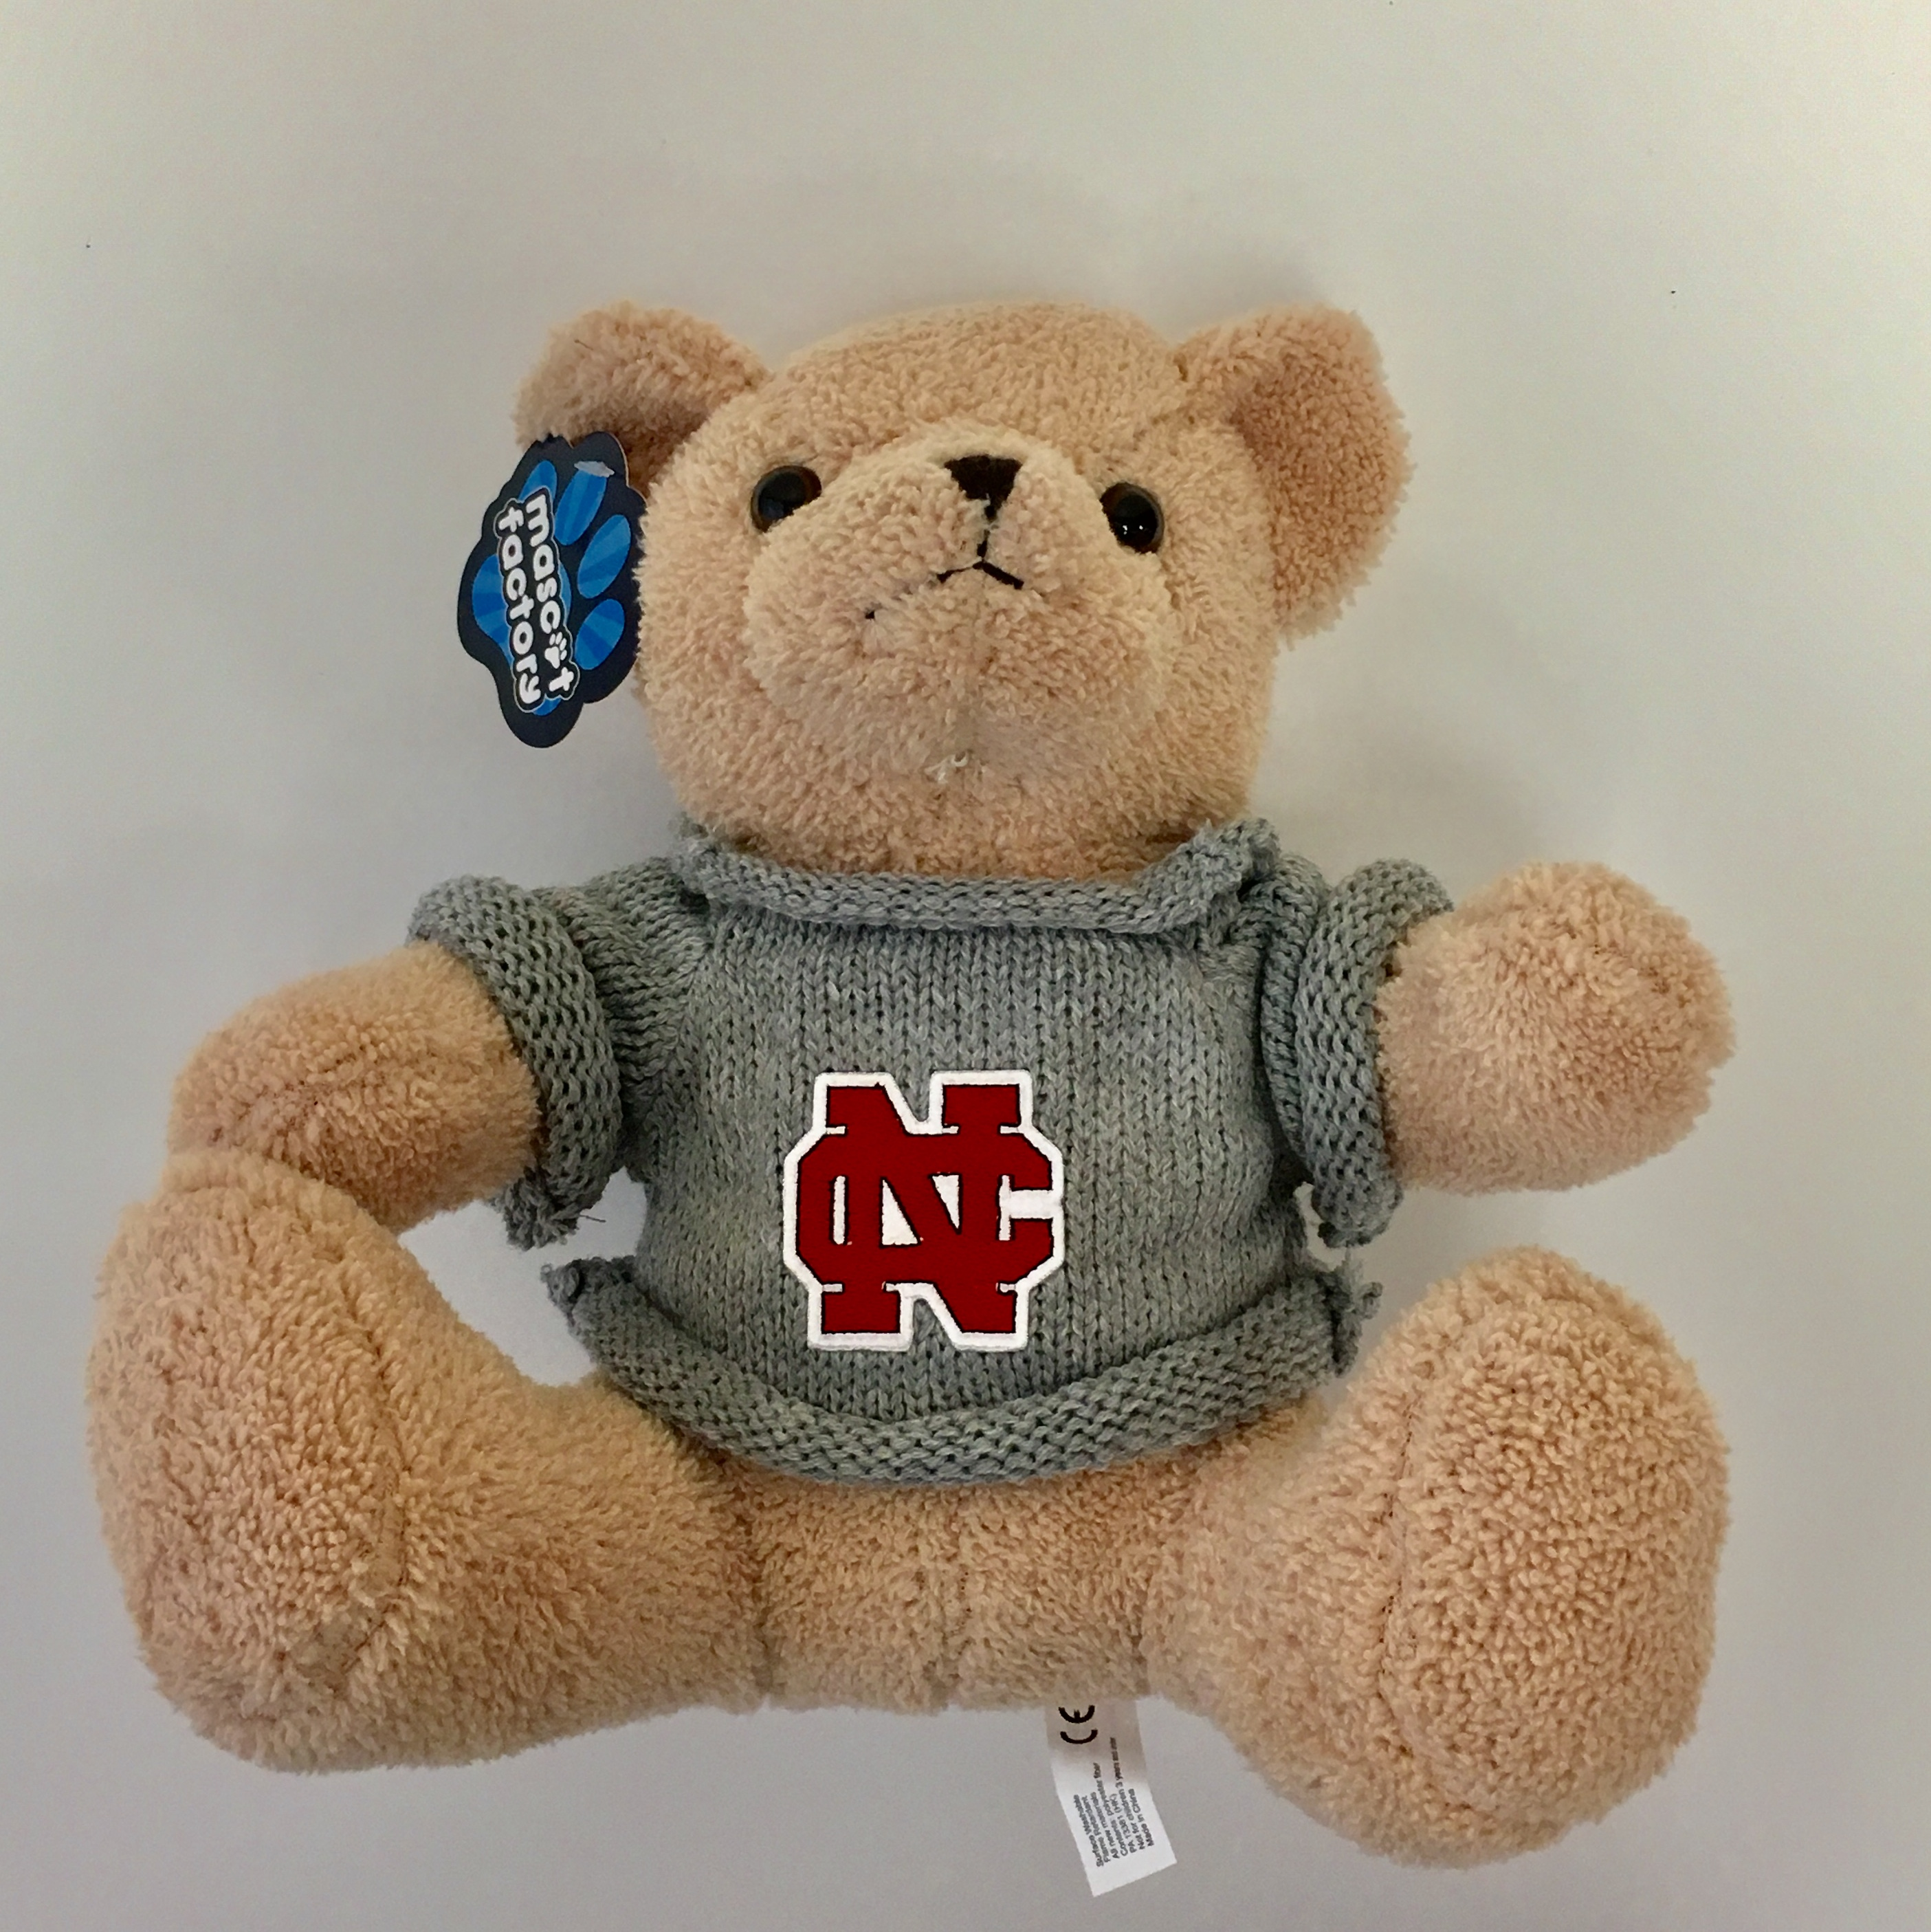 Image for the Theodore Bear w/ Grey Sweater product